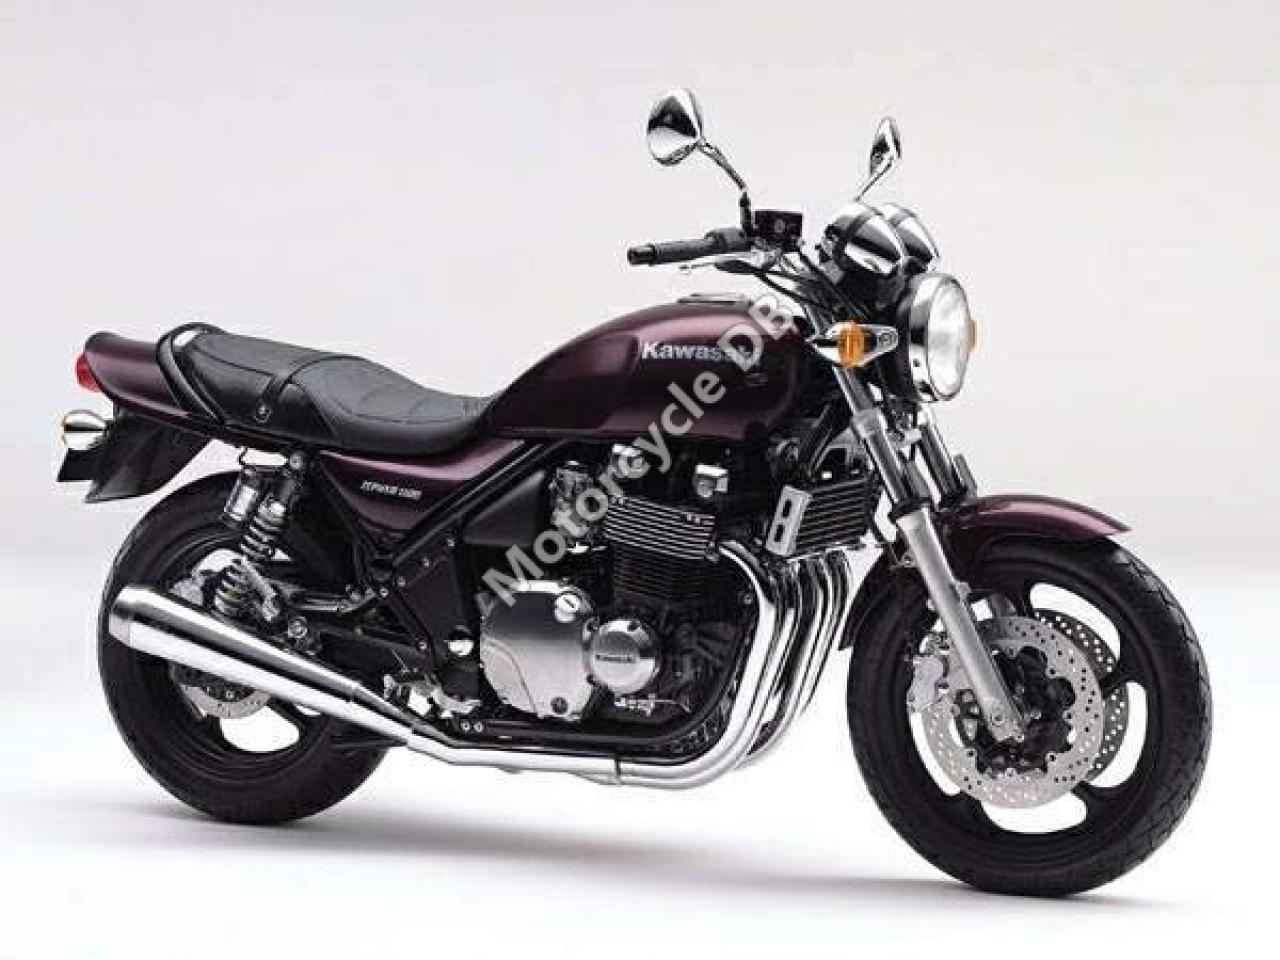 Kawasaki GPZ550 (reduced effect) #9